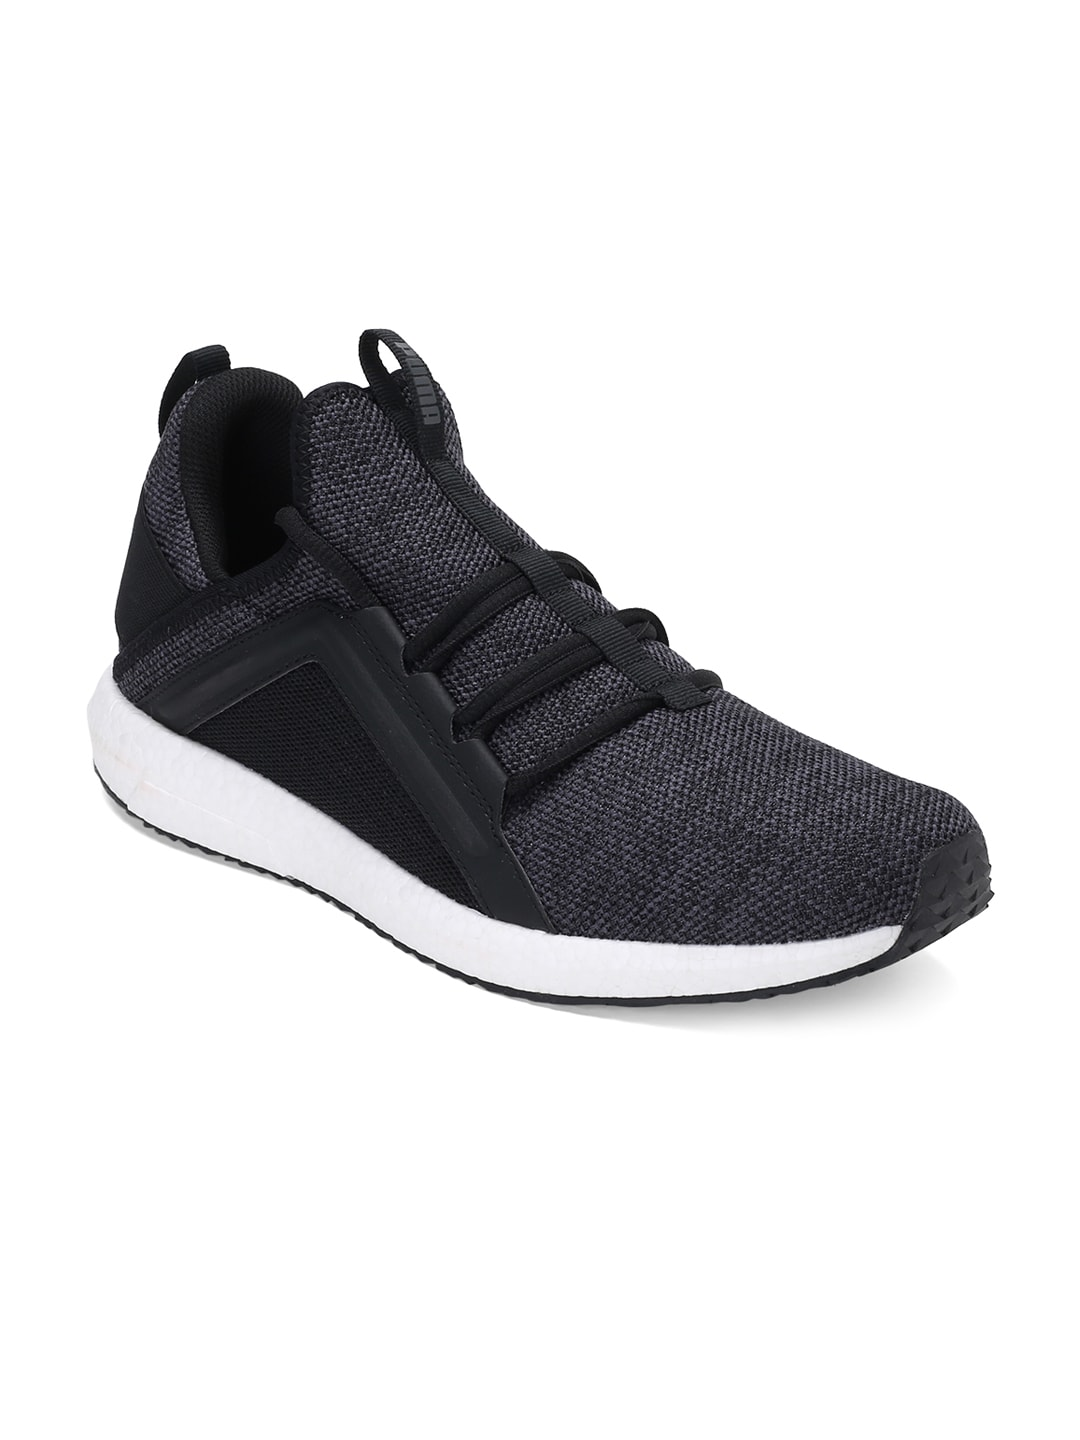 5dfdd0e11c5f Sports Shoes for Men - Buy Men Sports Shoes Online in India - Myntra